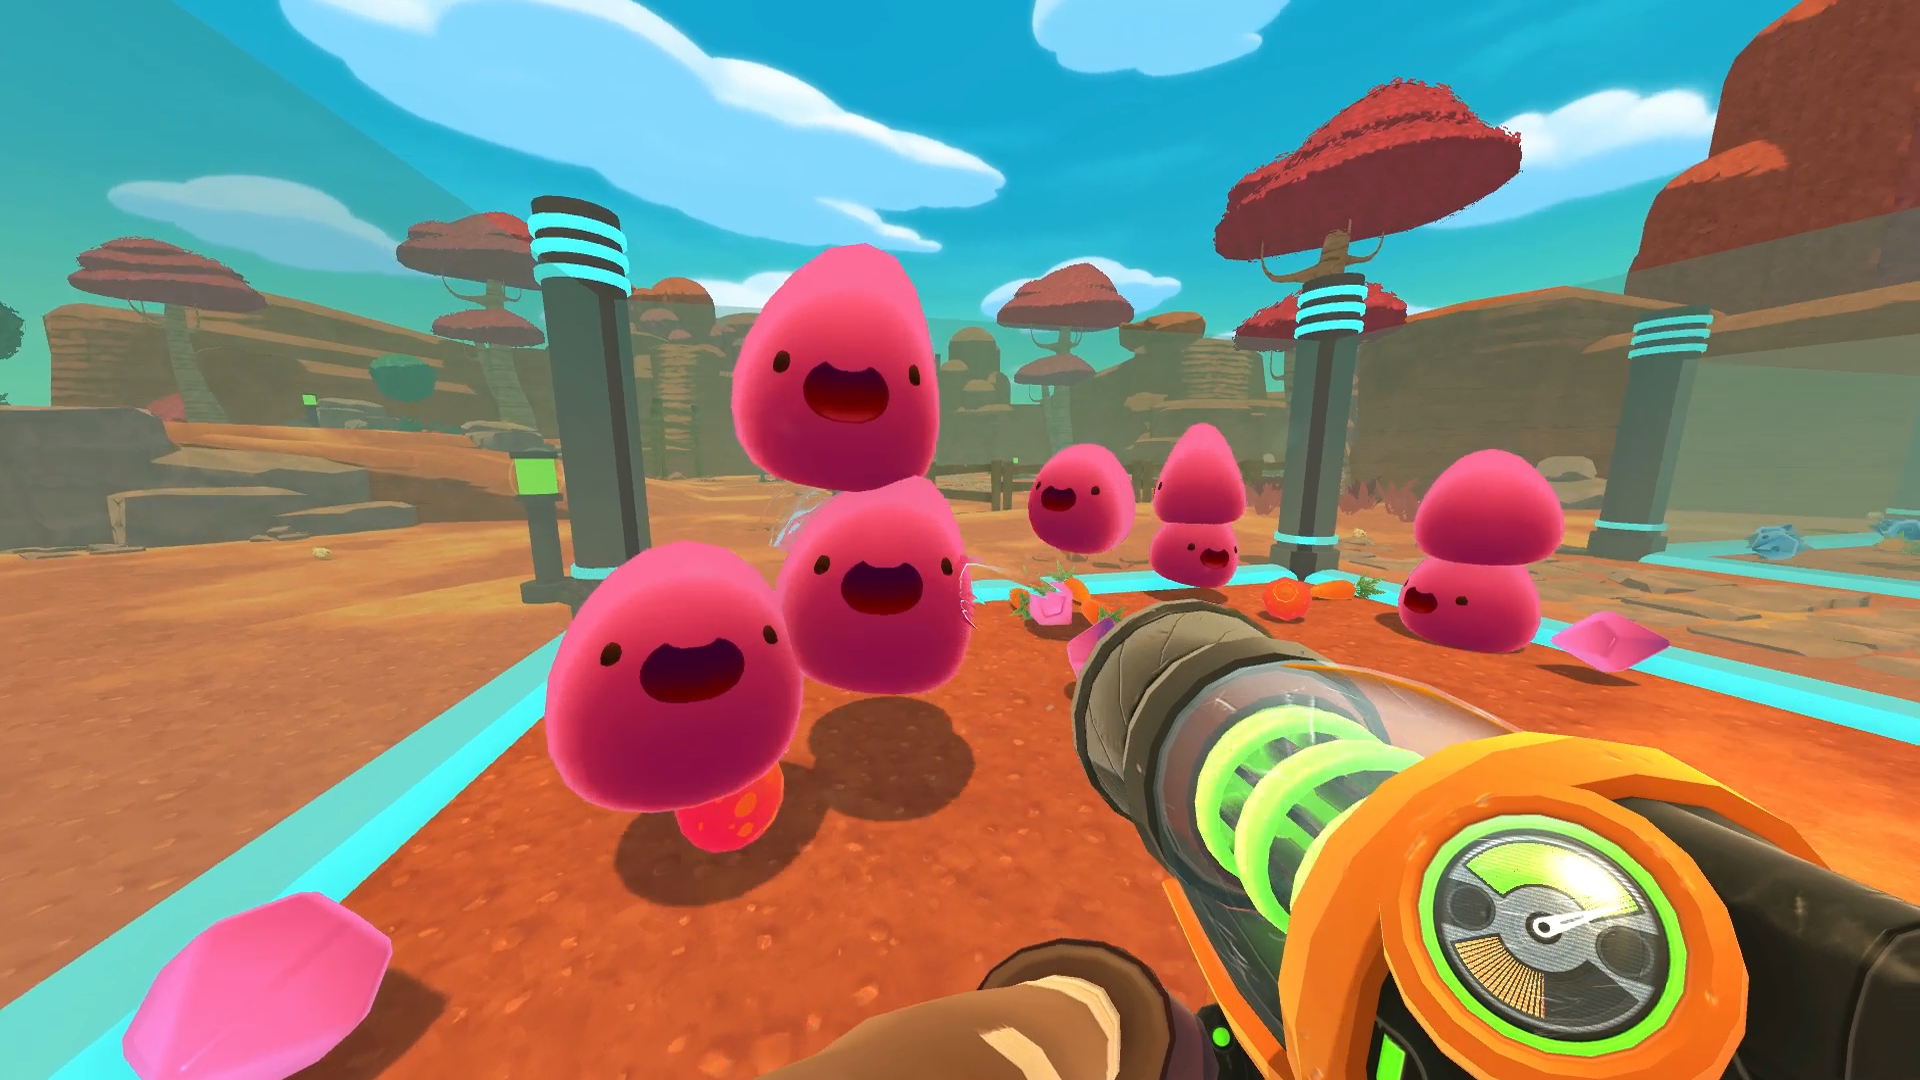 Slime Rancher Wallpapers High Quality Download Free